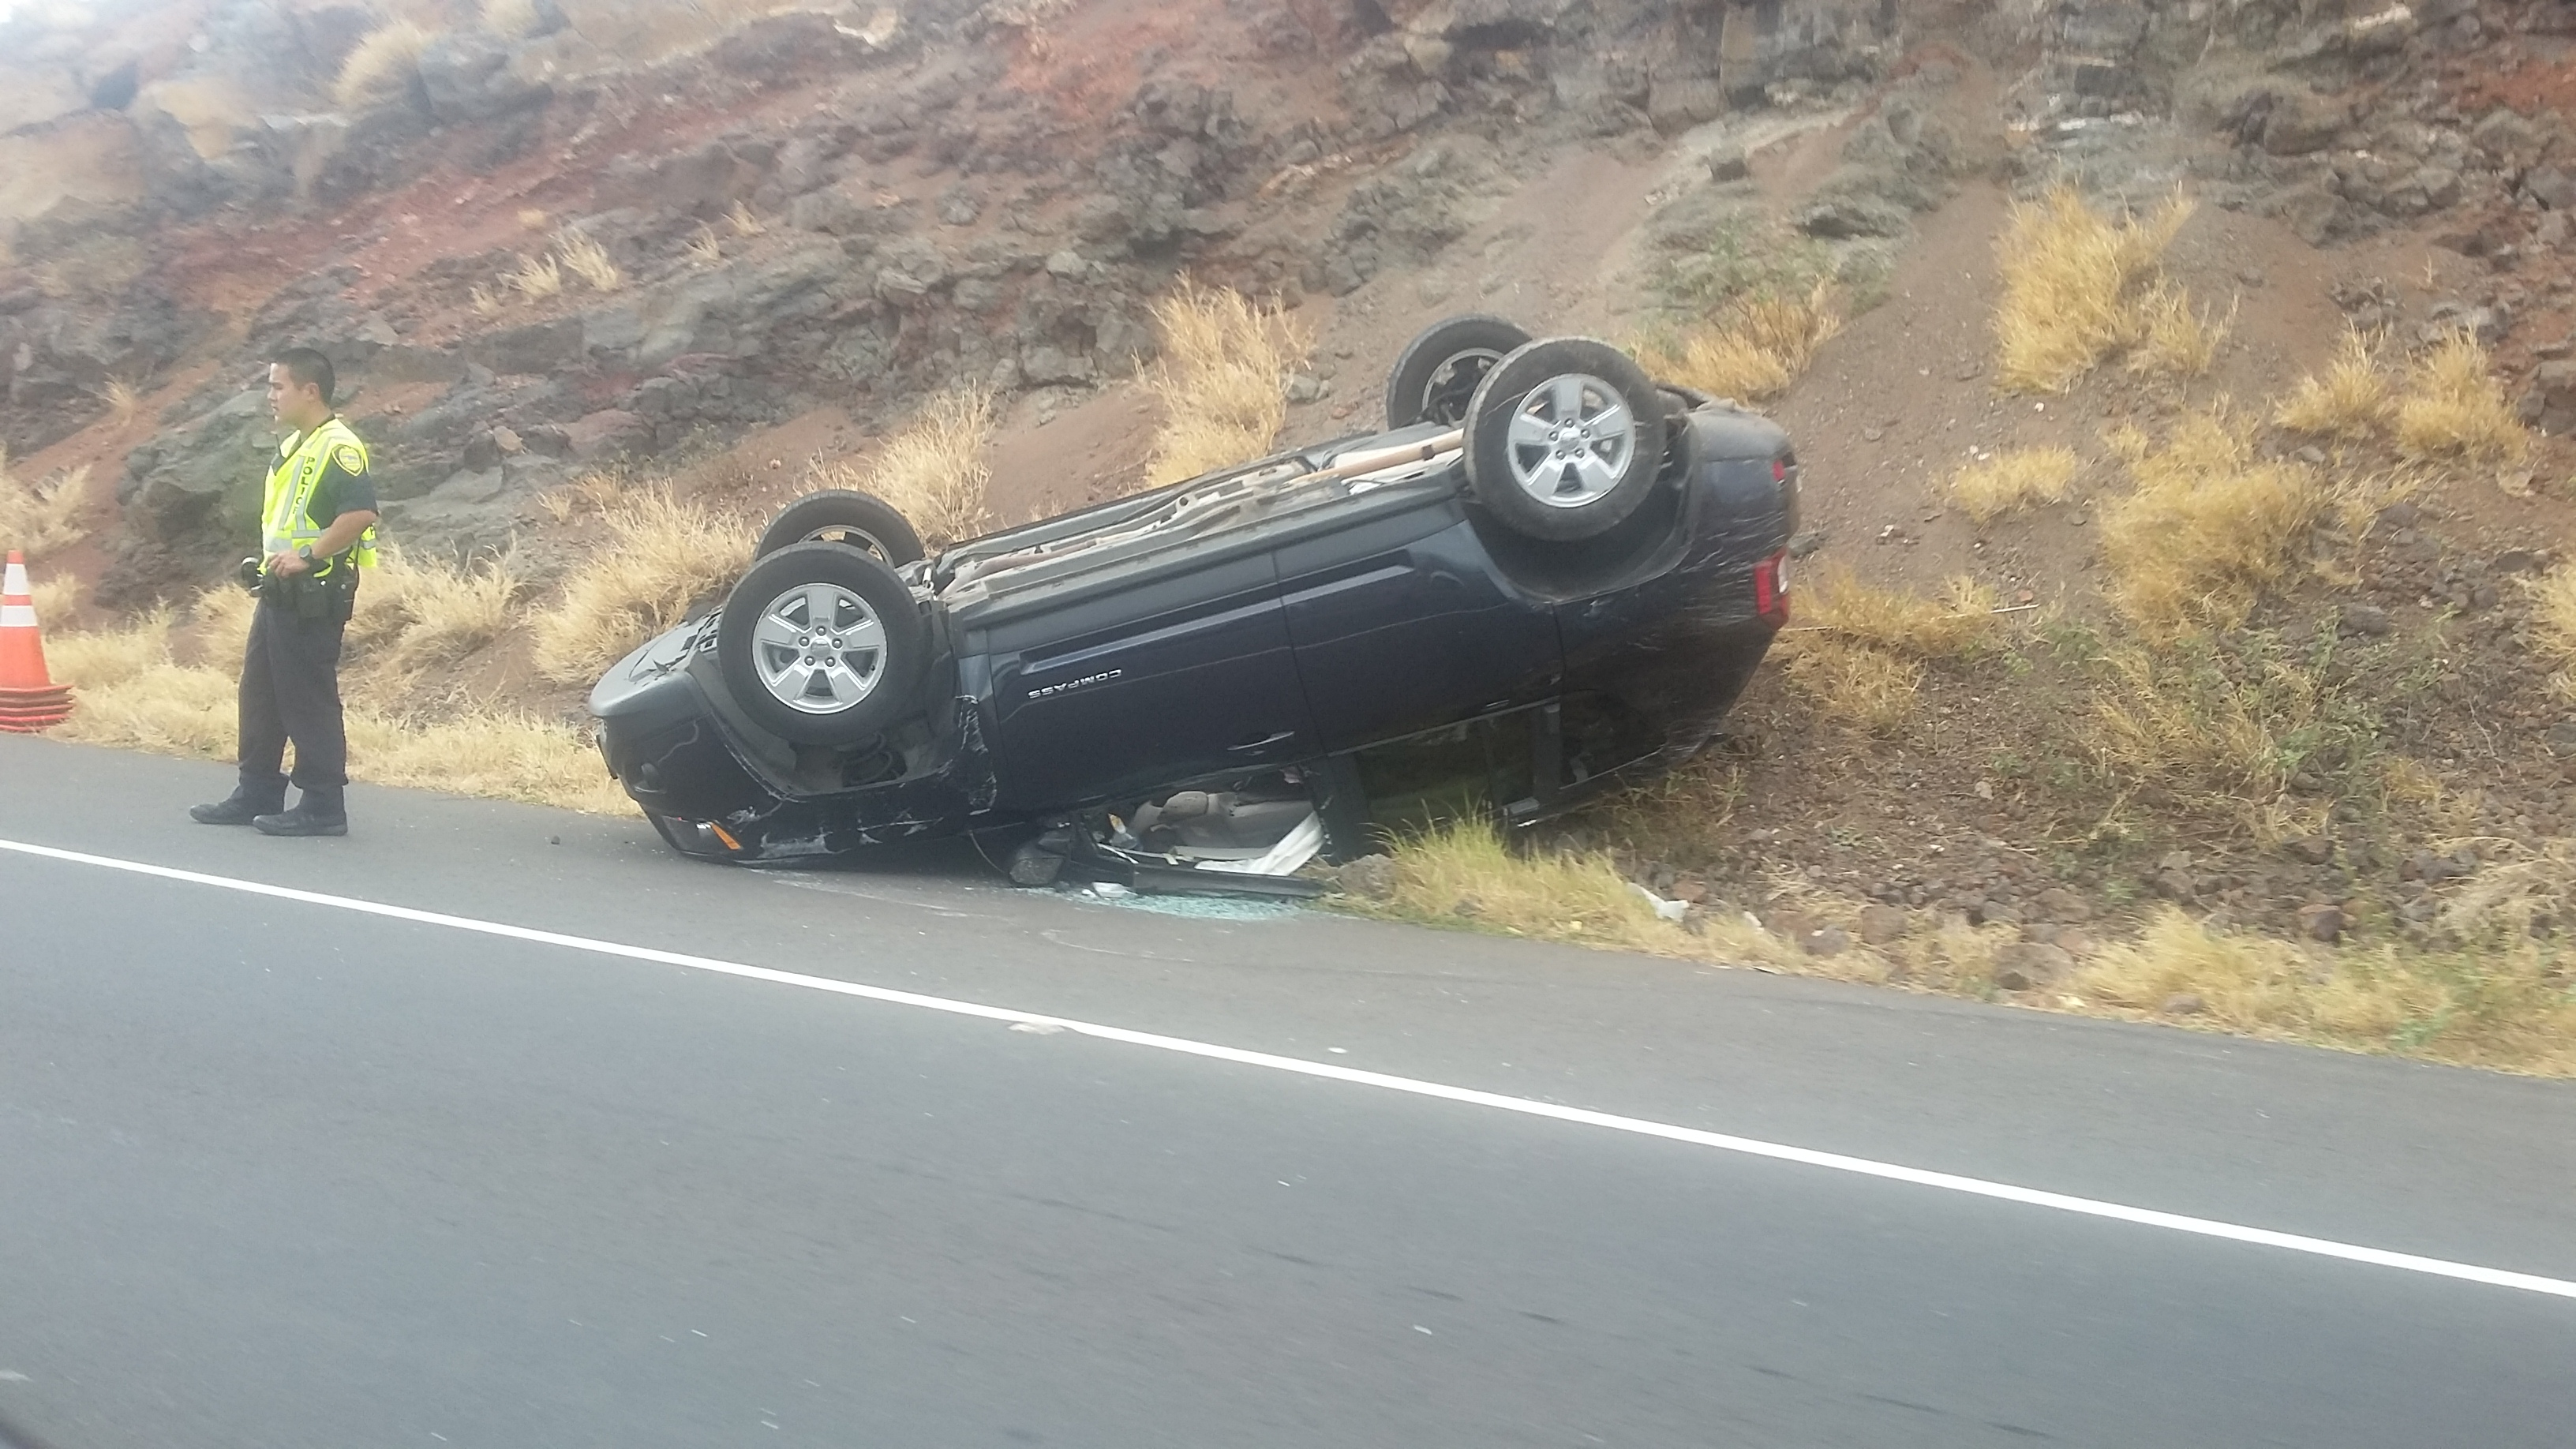 Maui Now : Traffic Alert: Car Accident Reported Near Scenic Lookout ...